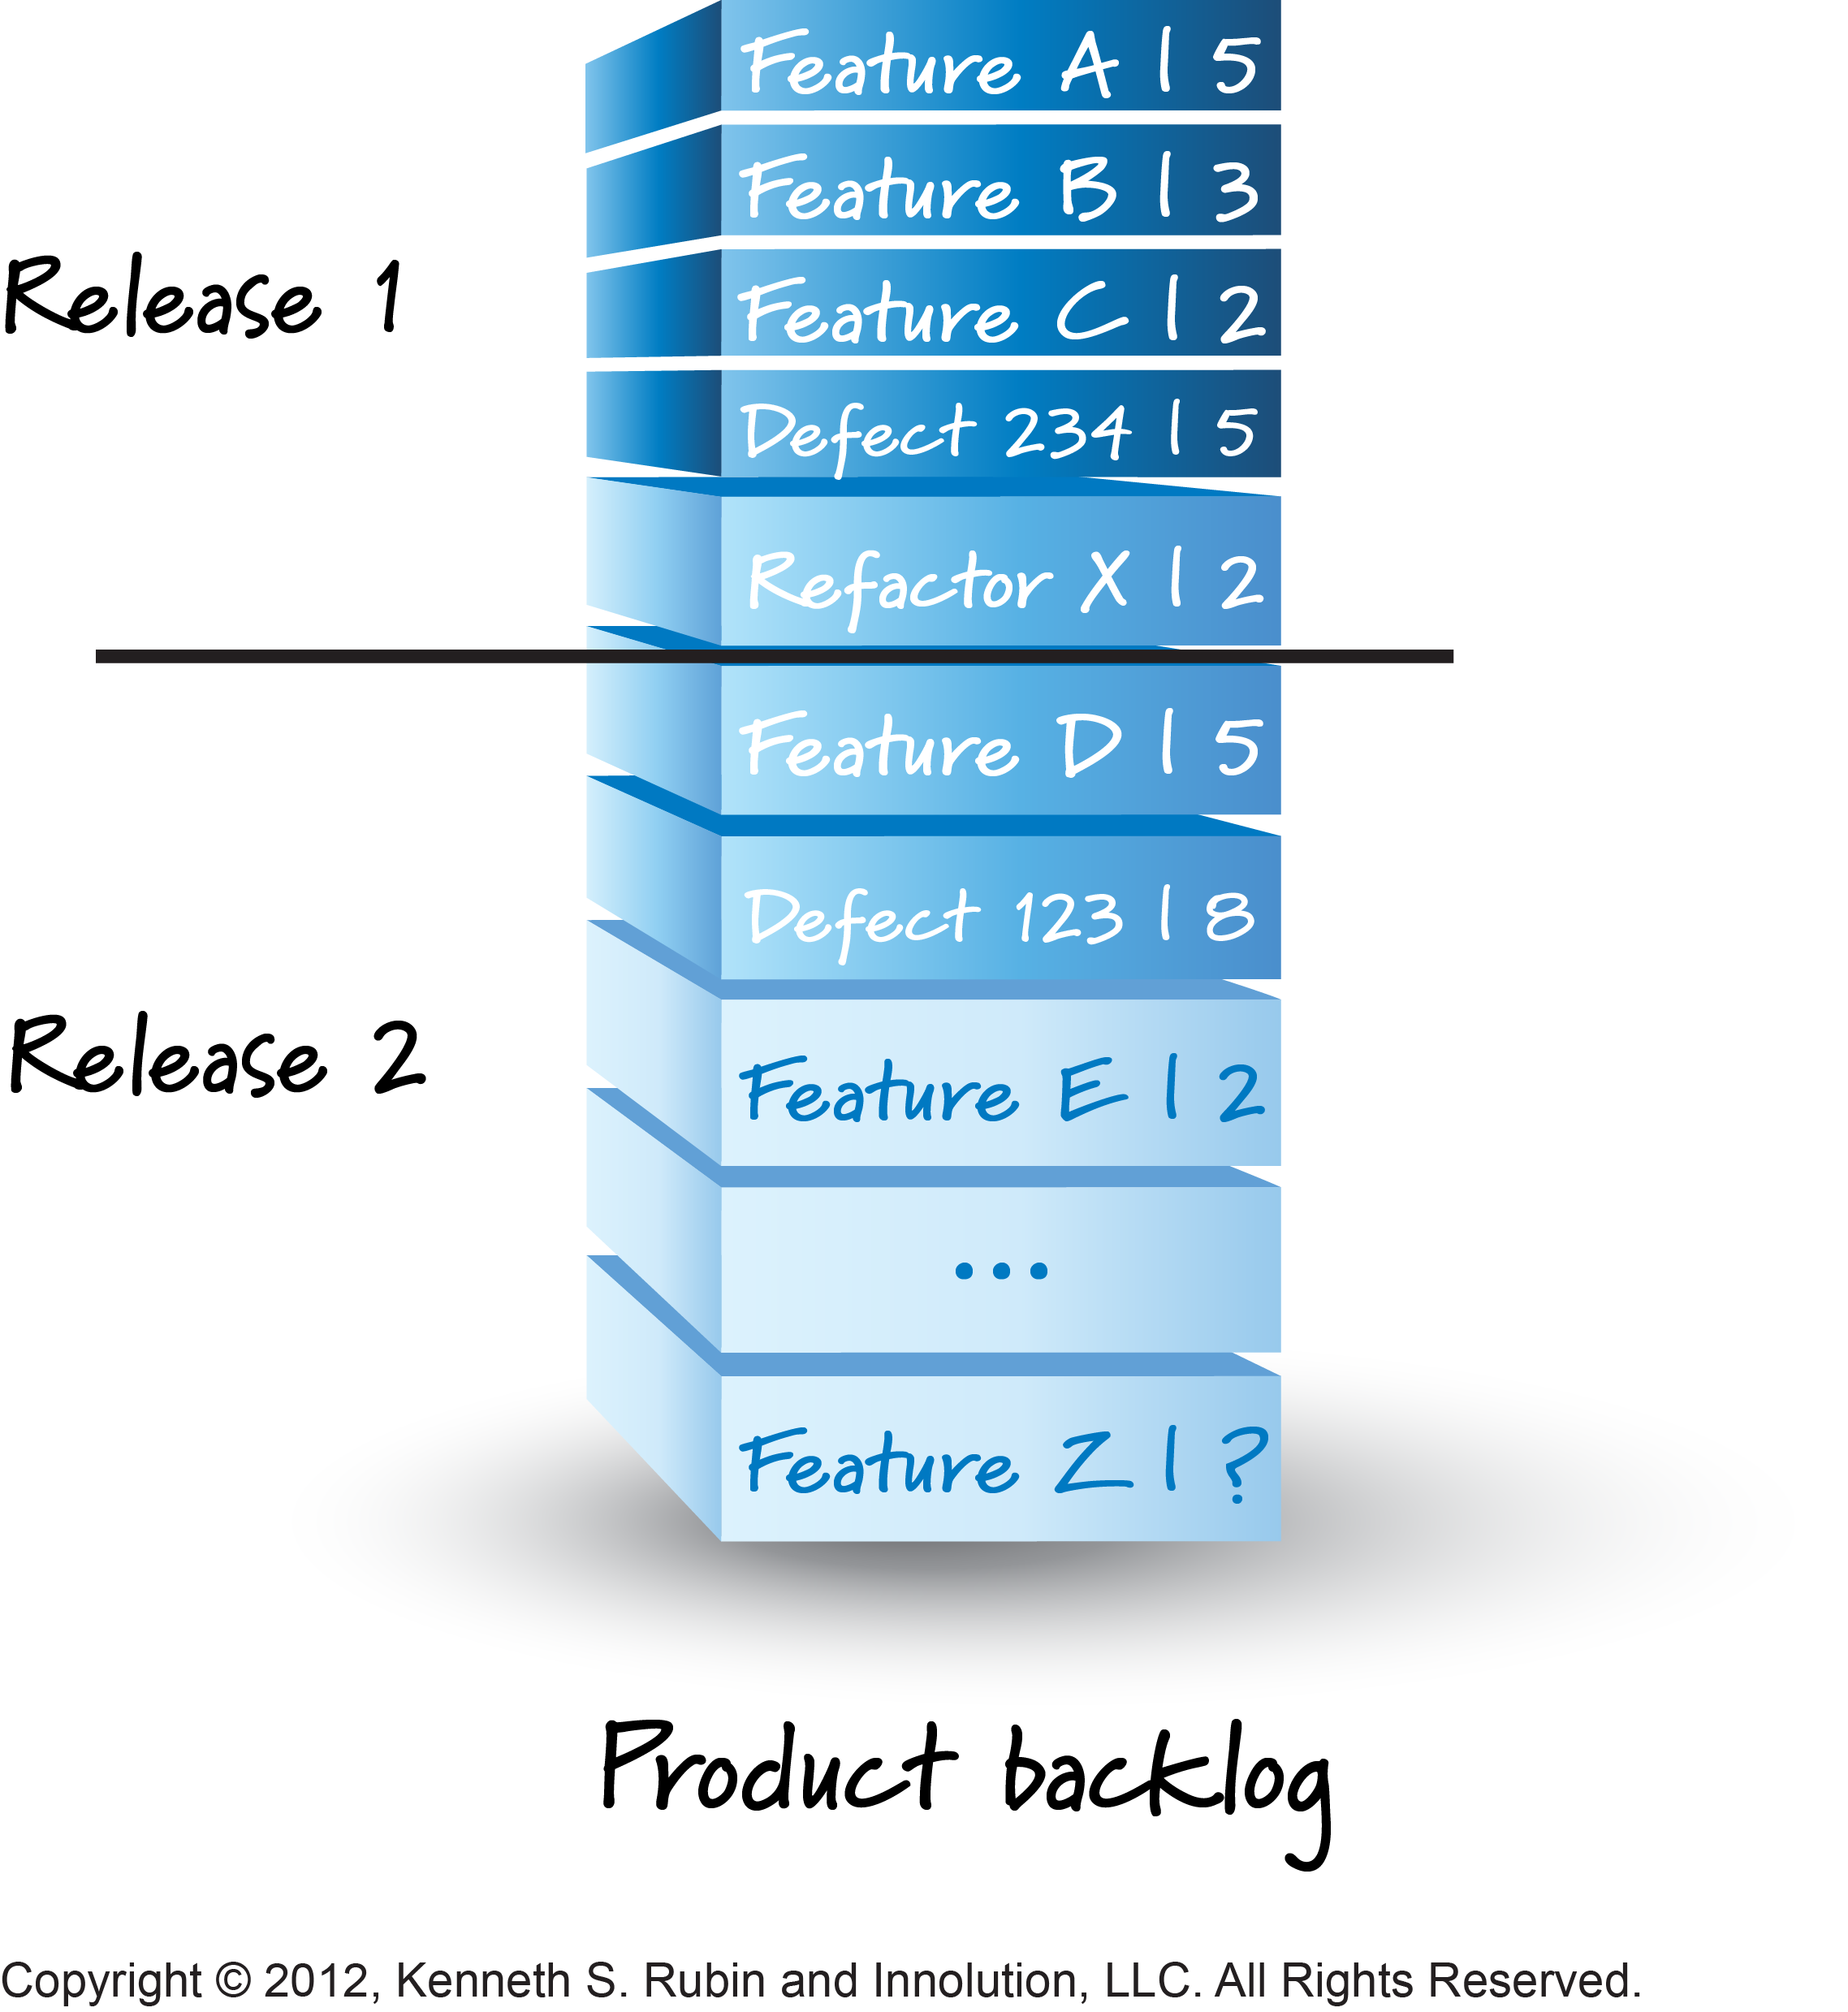 In Scrum release planning, the group draws an initial release line through the product backlogs, which separates a product backlog into one or more releases. This line can move as the team learns more about the product.